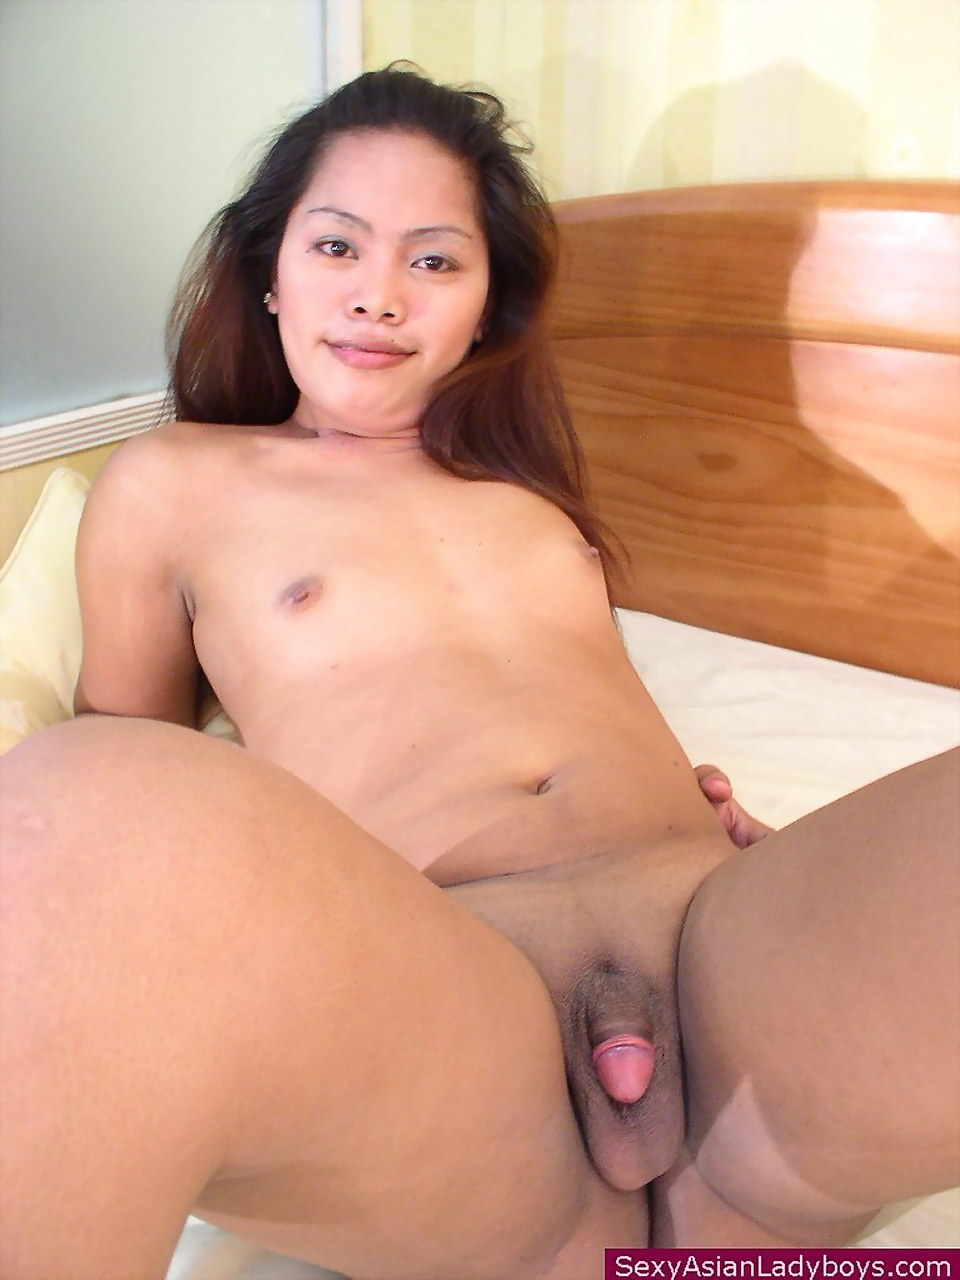 with-new-asian-ladyboy-galleries